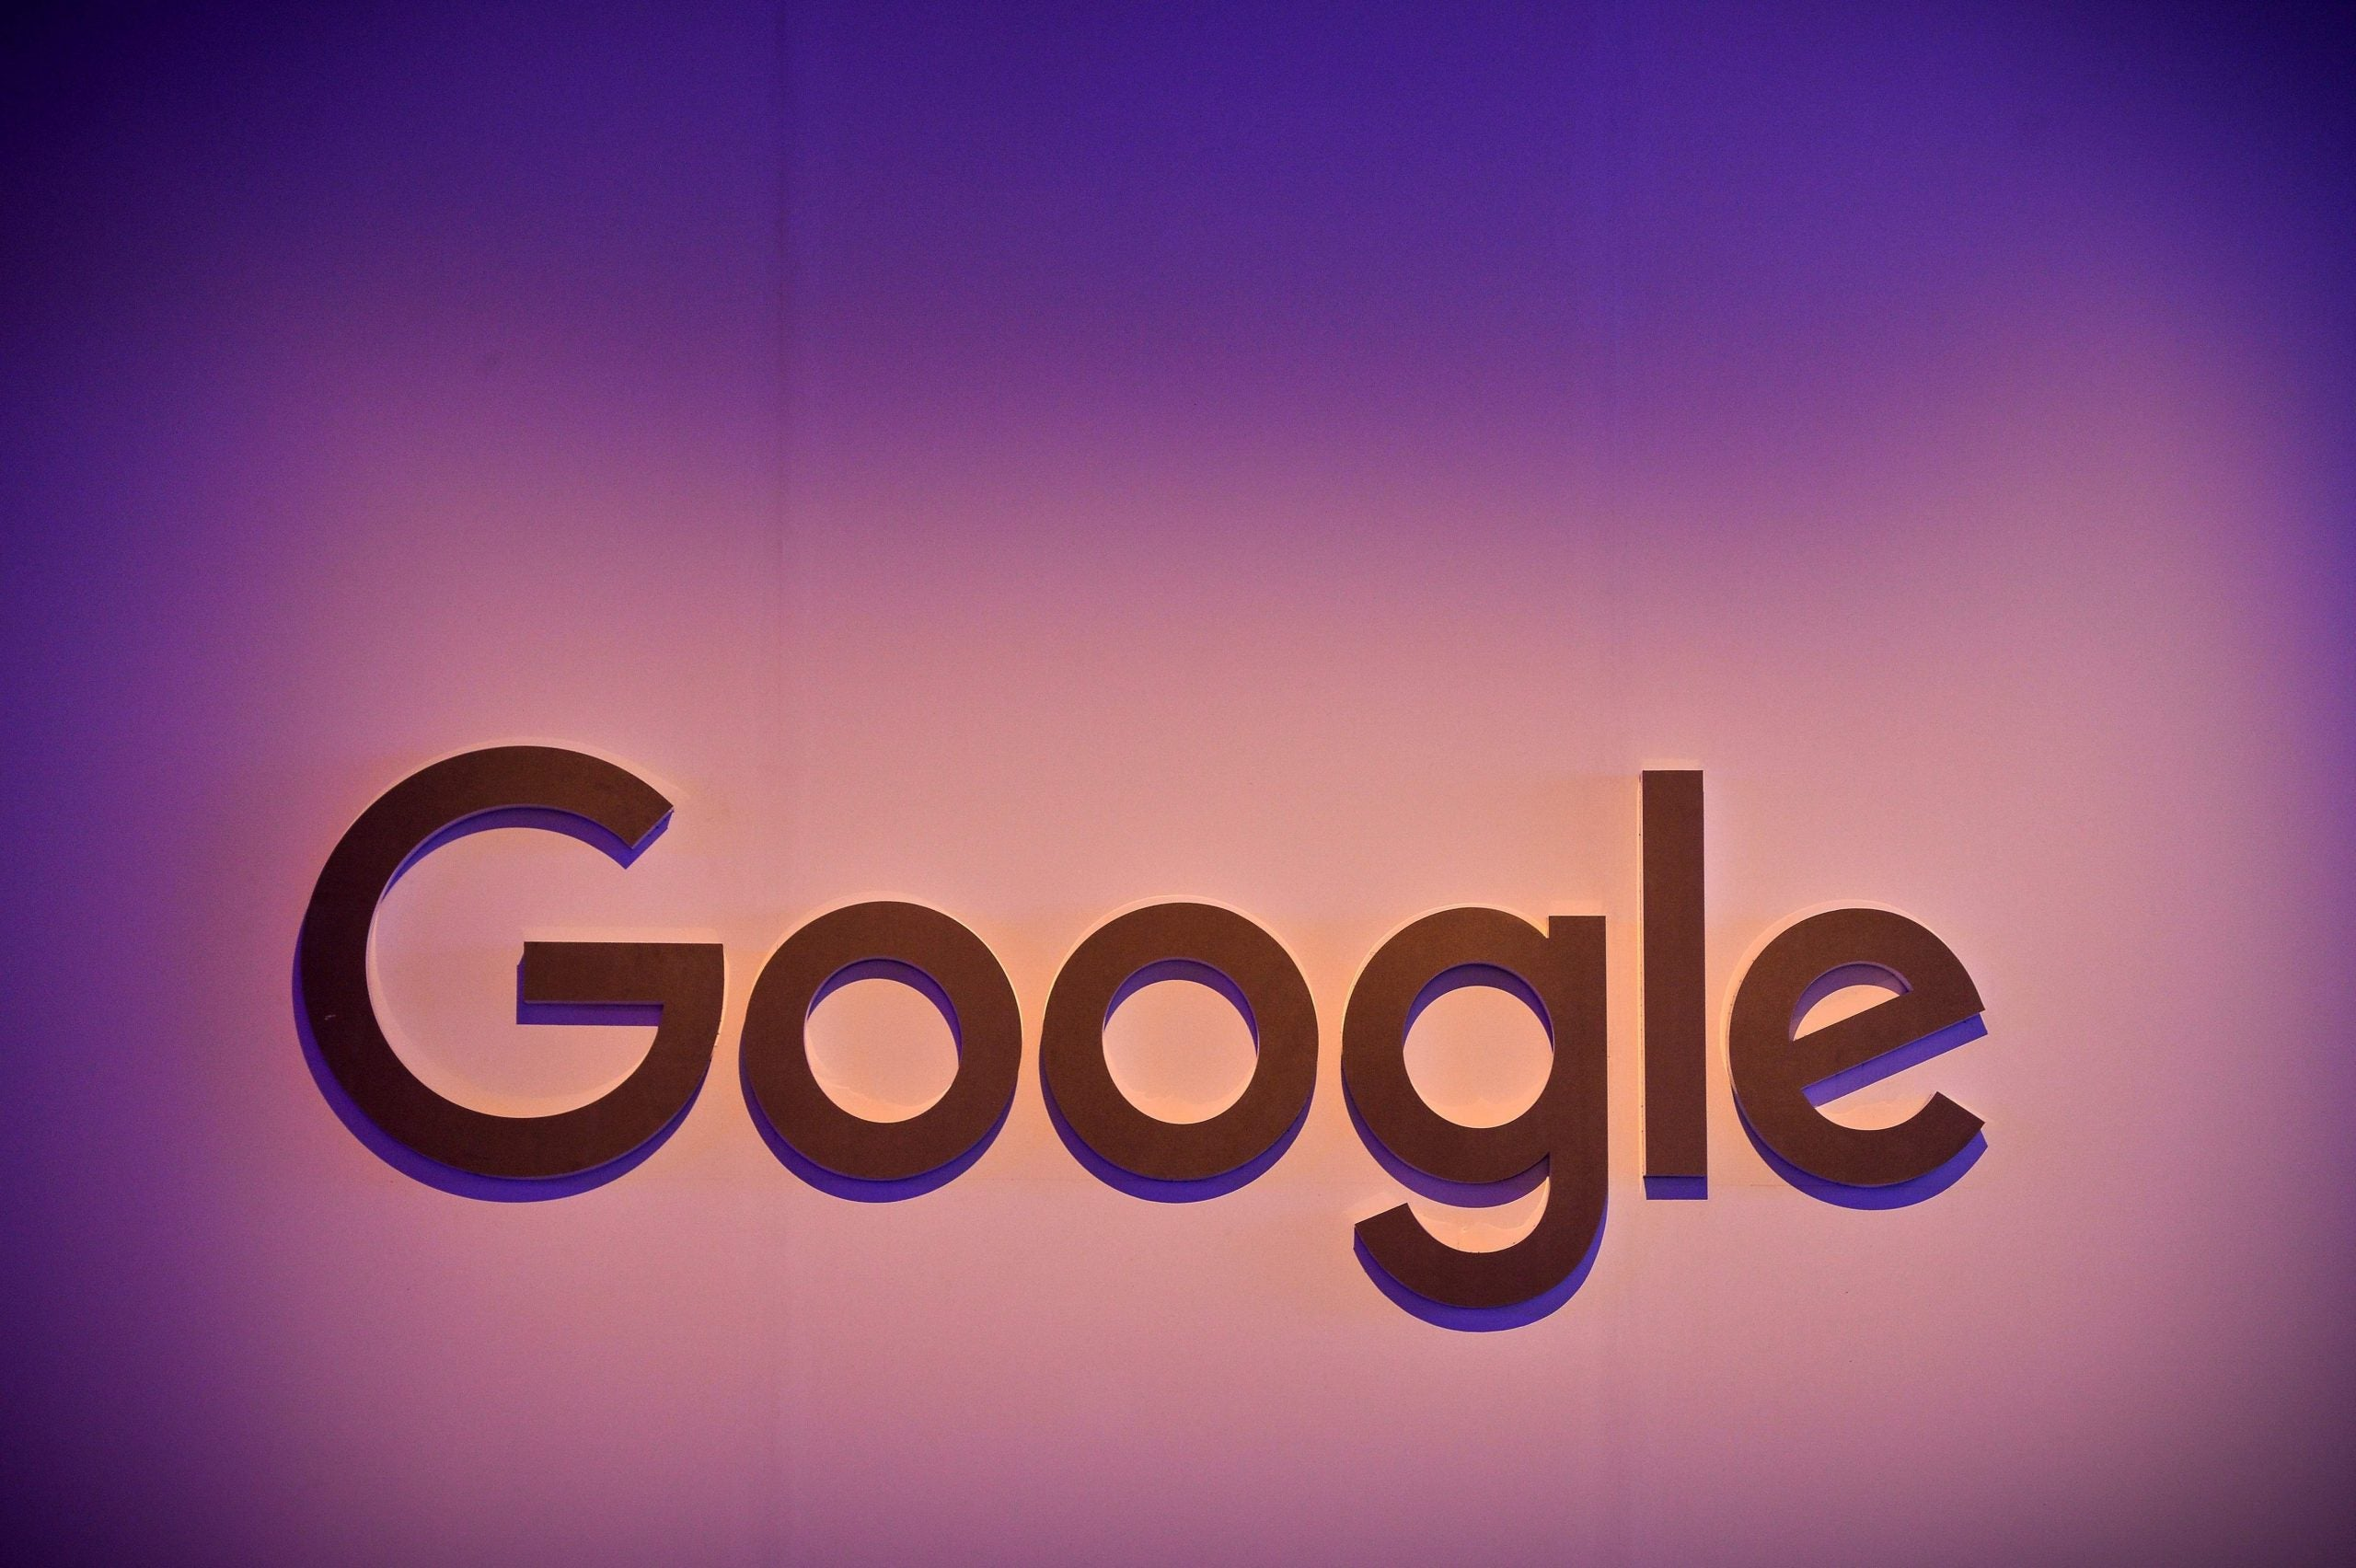 Google's deal with the government shows where power really lies